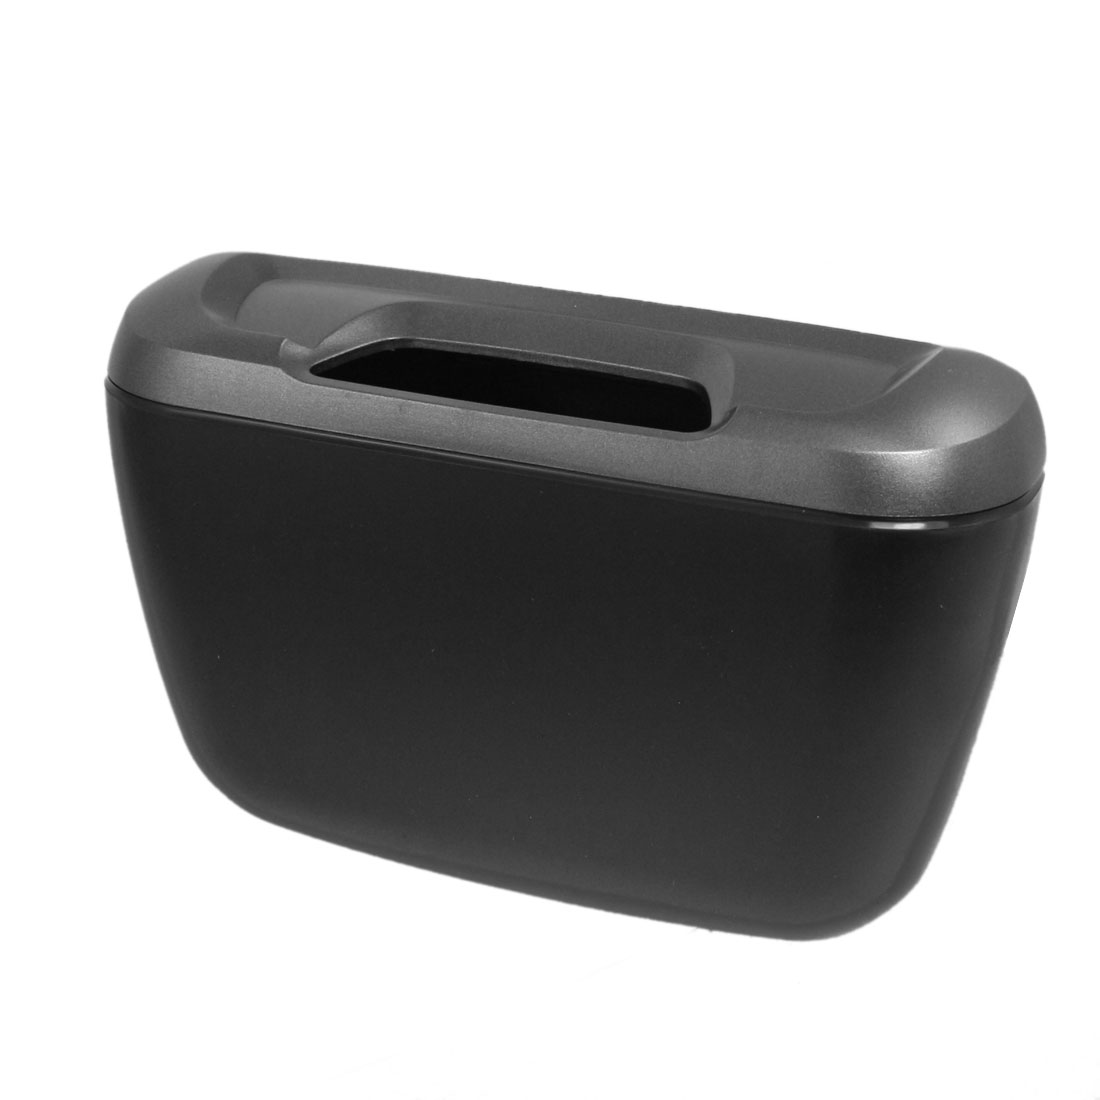 Vehicle Car Black Gray Plastic Trash Rubbish Garbage Bin Box Can